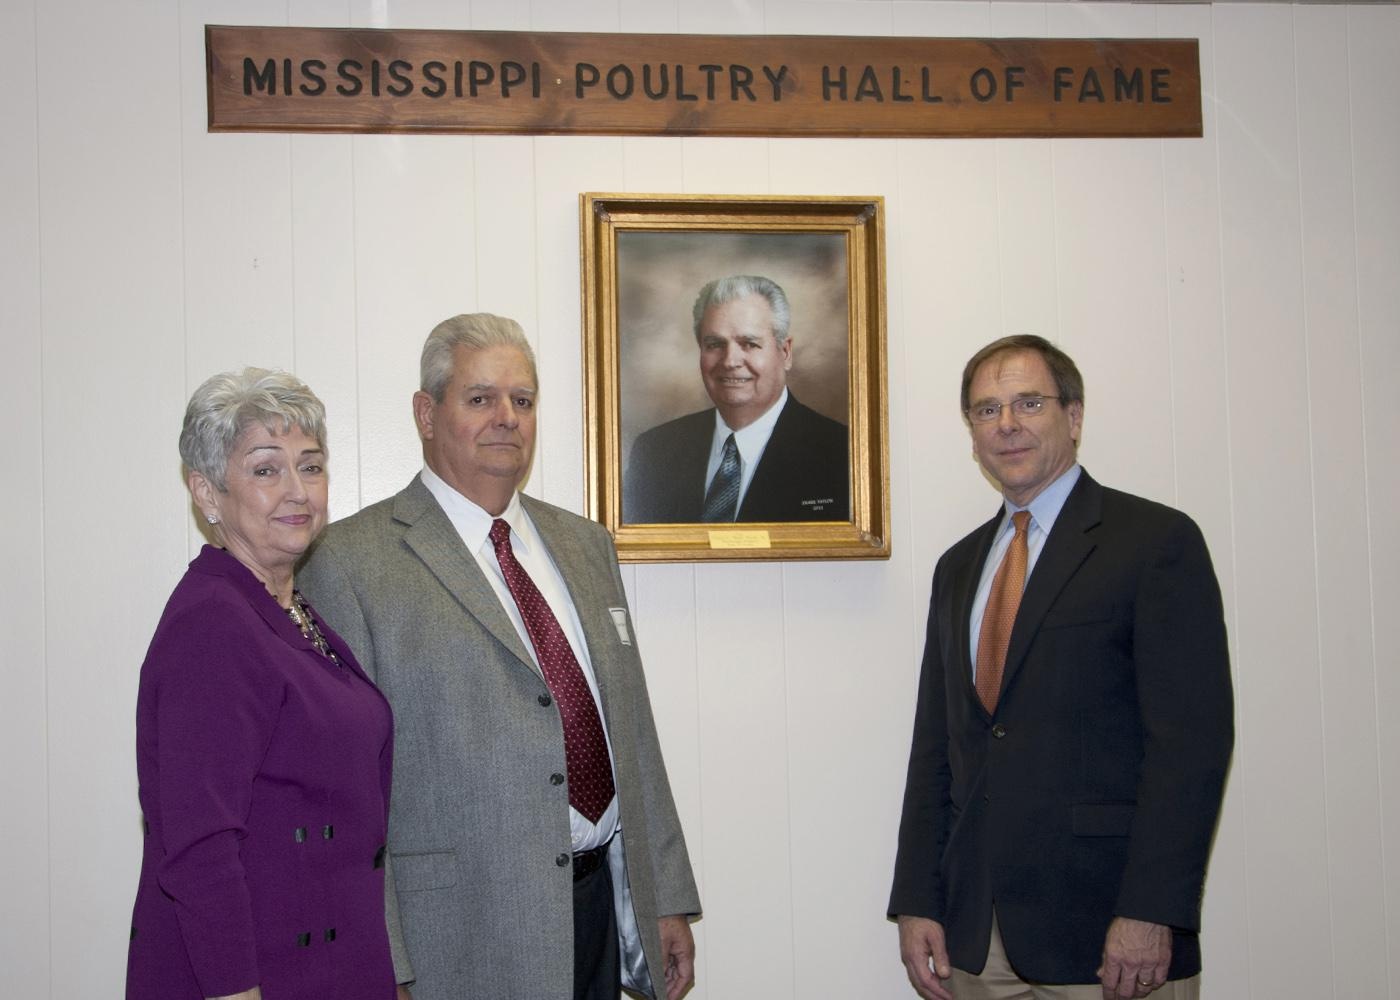 "Coyt ""Bud"" West was inducted into the Mississippi Poultry Association's Hall of Fame for his many years of dedication to the poultry industry. West was joined by his wife, Gwen (left), and Mississippi Poultry Association President Mark Leggett (far right) at the Nov. 17 event. (Photo by Kat Lawrence)"